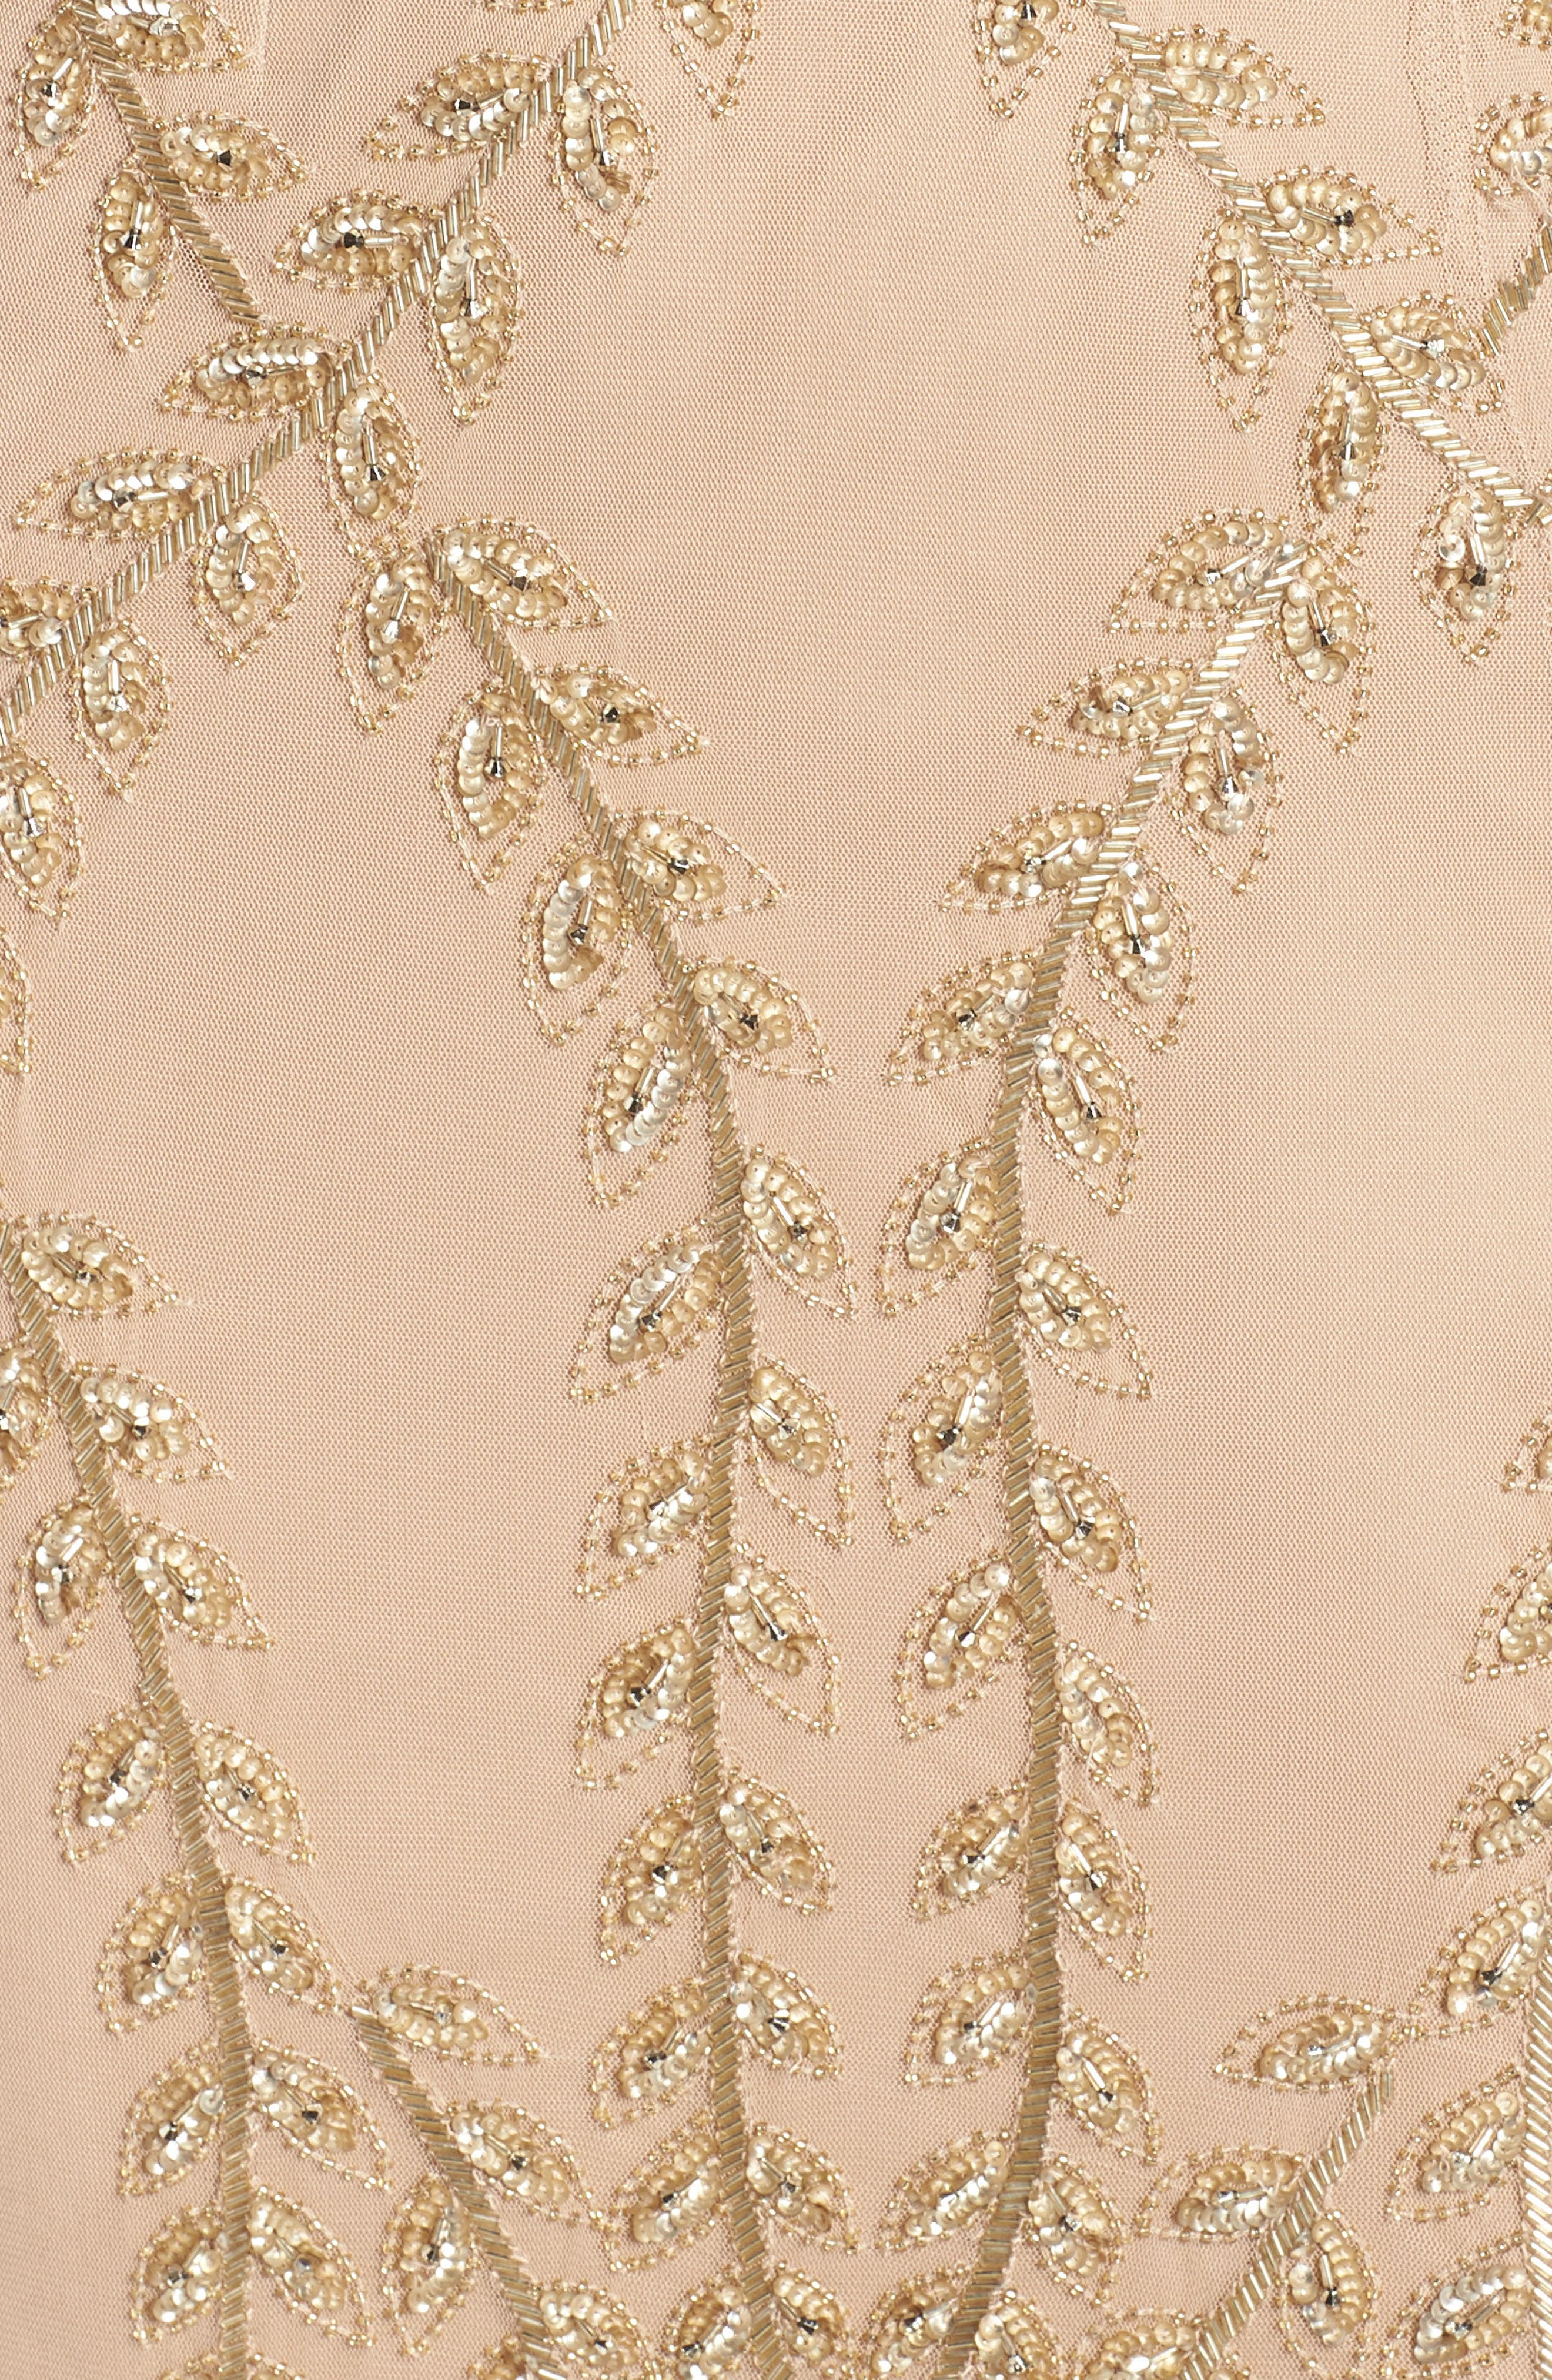 ADRIANNA PAPELL,                             Fern Beaded Gown,                             Alternate thumbnail 6, color,                             CHAMPAGNE/ GOLD